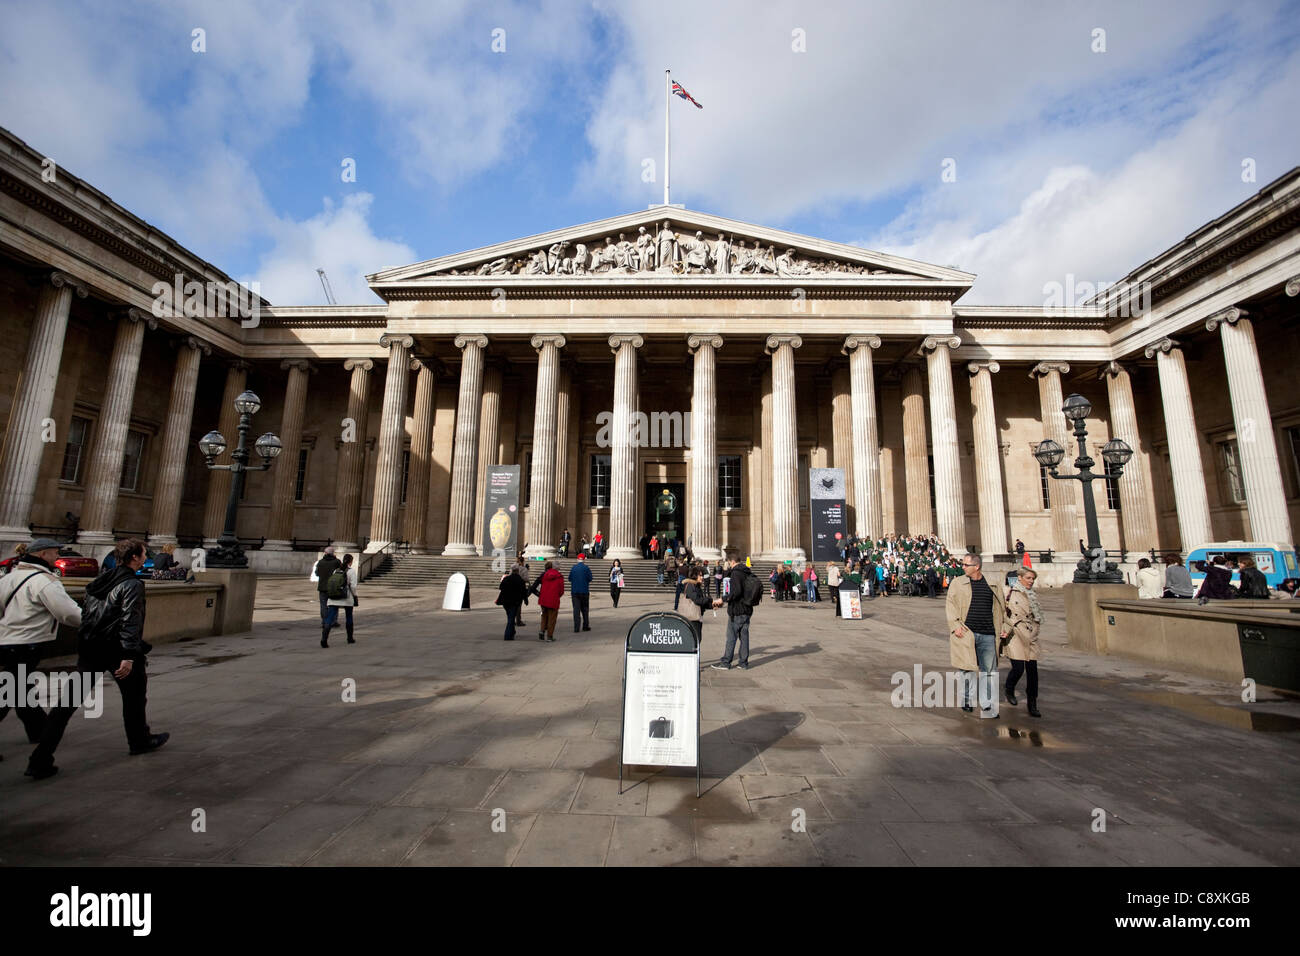 british museum exterior stock photos british museum exterior stock